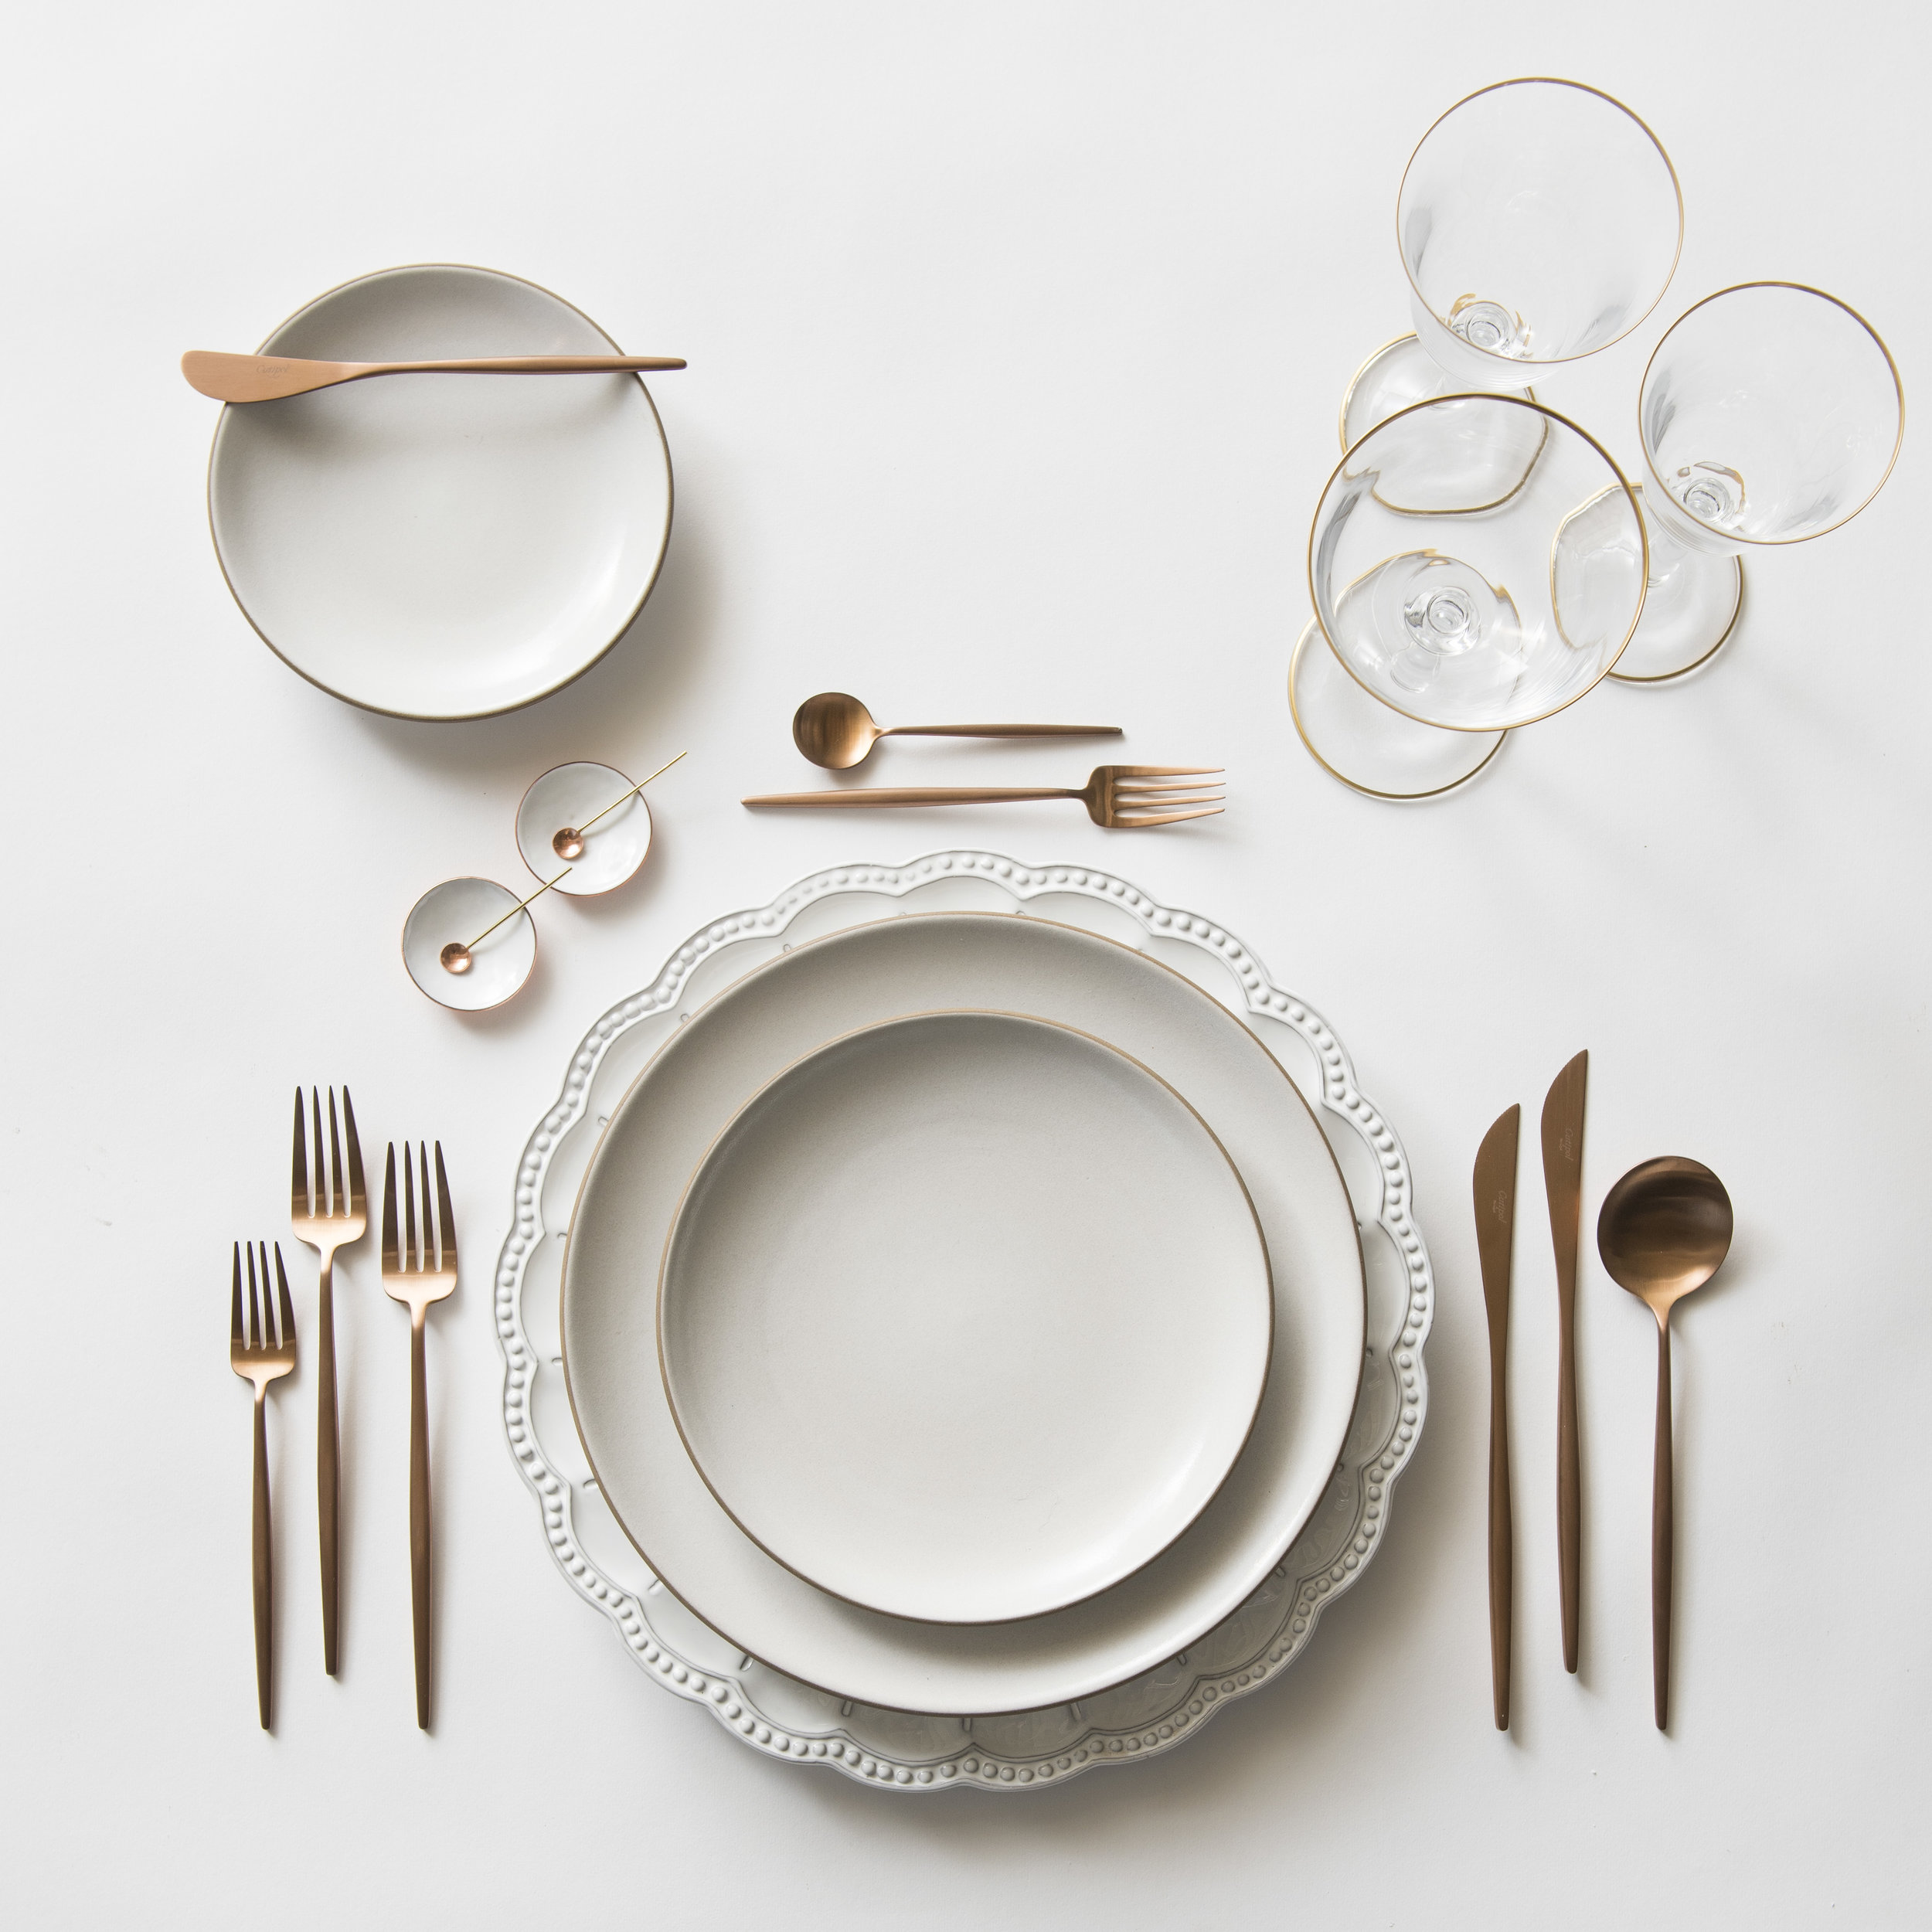 RENT: Signature Collection Chargers + Heath Ceramics in Opaque White + Moon Flatware in Brushed Rose Gold + Chloe 24k Gold Rimmed Stemware + White Enamel Salt Cellars + Tiny Gold/Copper Spoons   SHOP: Moon Flatware in Rose Gold + Chloe 24k Gold Rimmed Stemware + White Enamel Salt Cellars